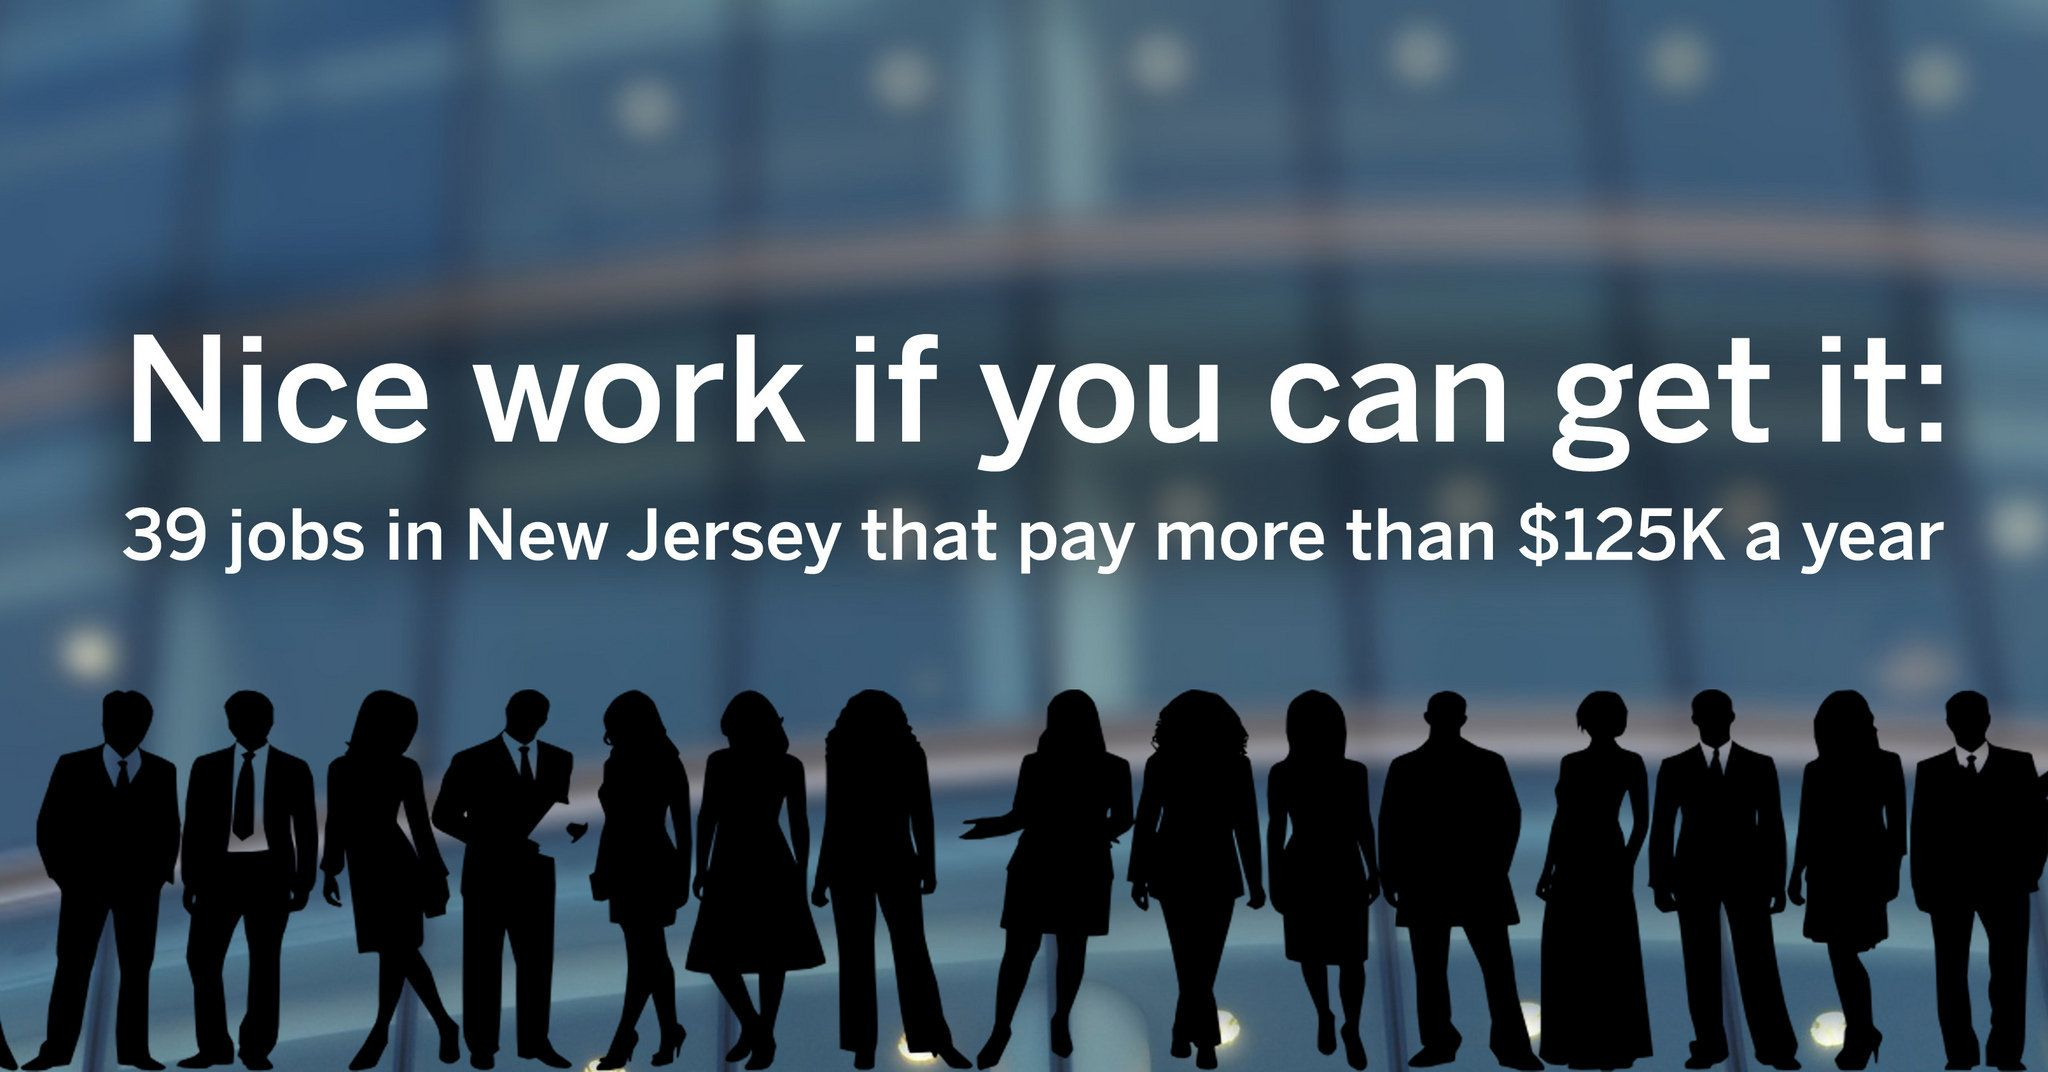 39 jobs in NJ that pay more